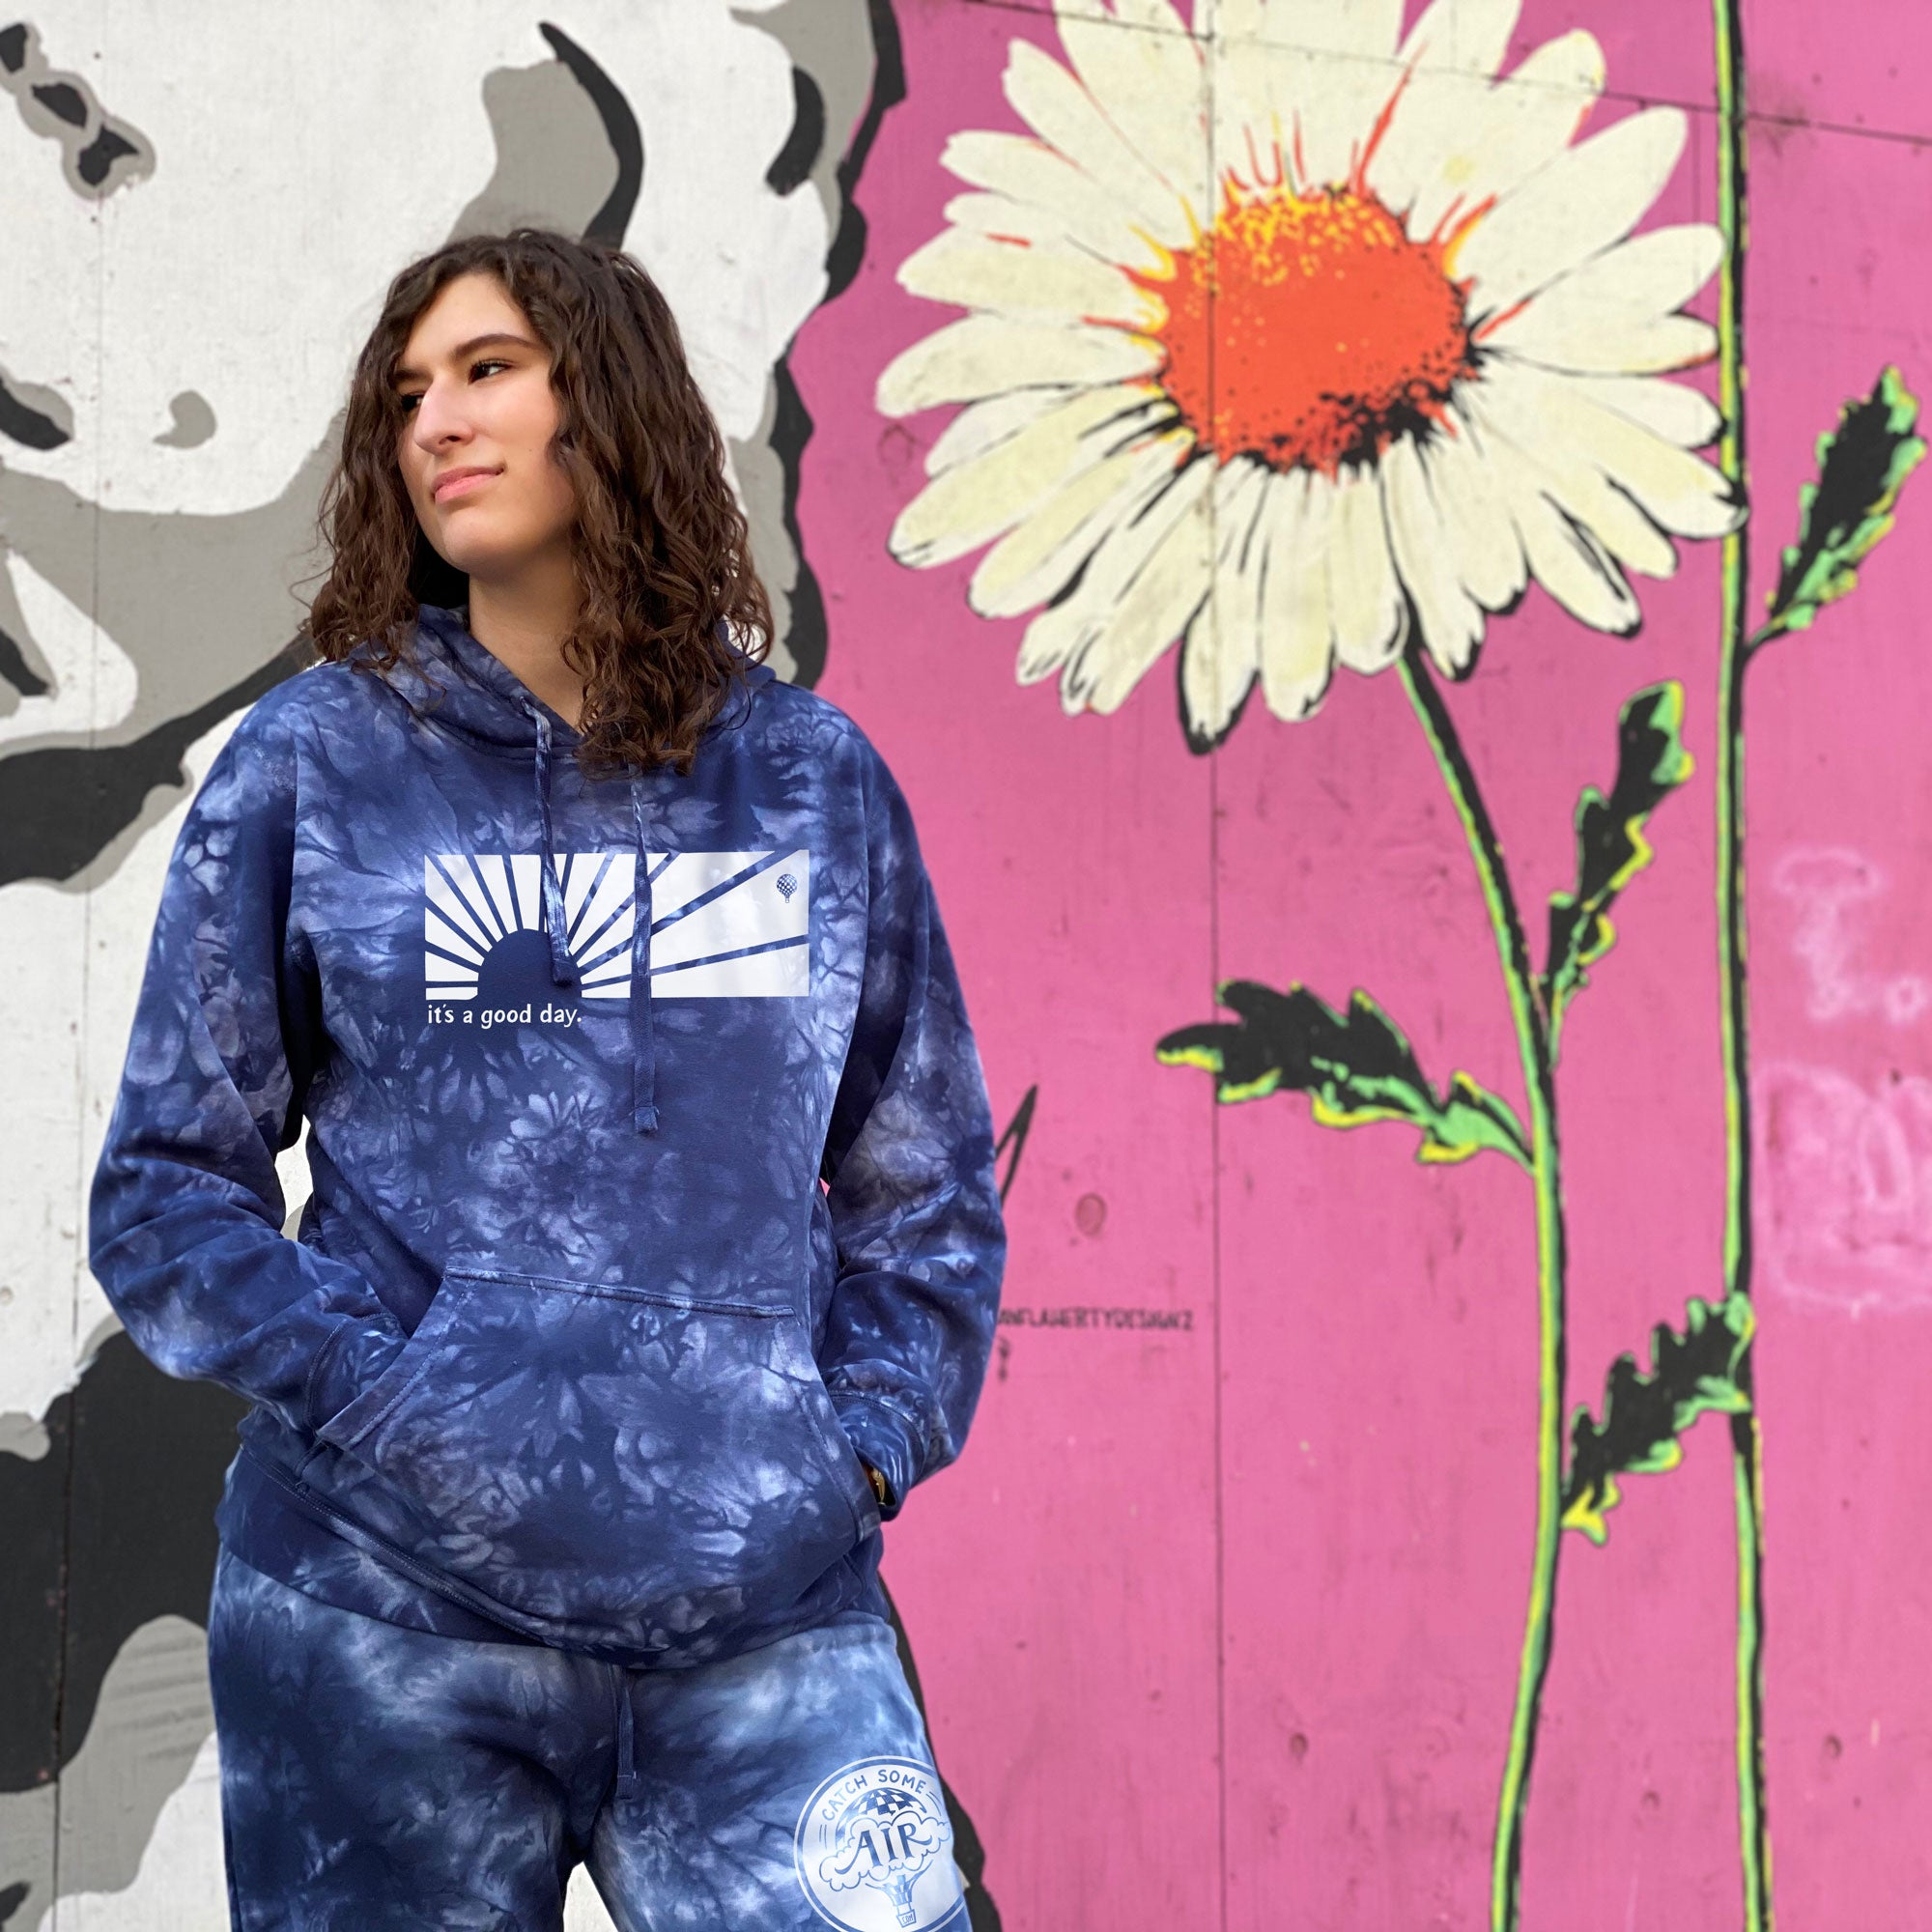 IT'S A GOOD DAY | unisex pullover hoodie | tie dye NAVY